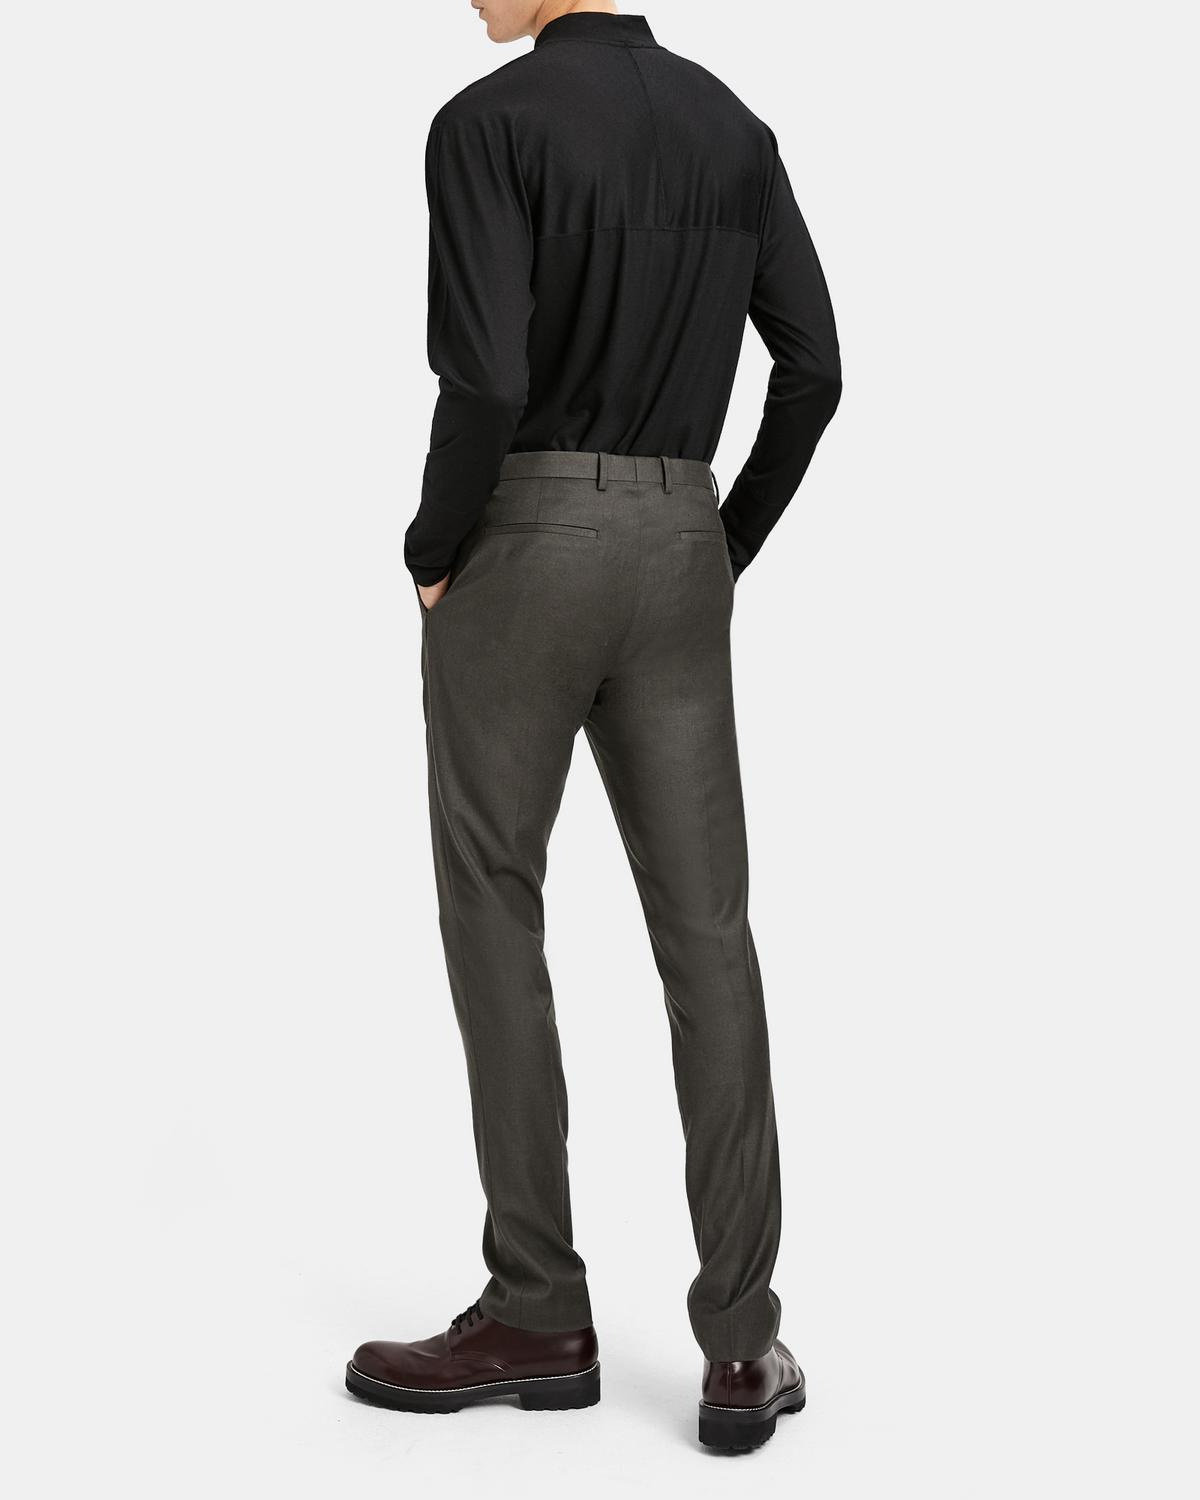 Tailored Flannel Zaine Pant